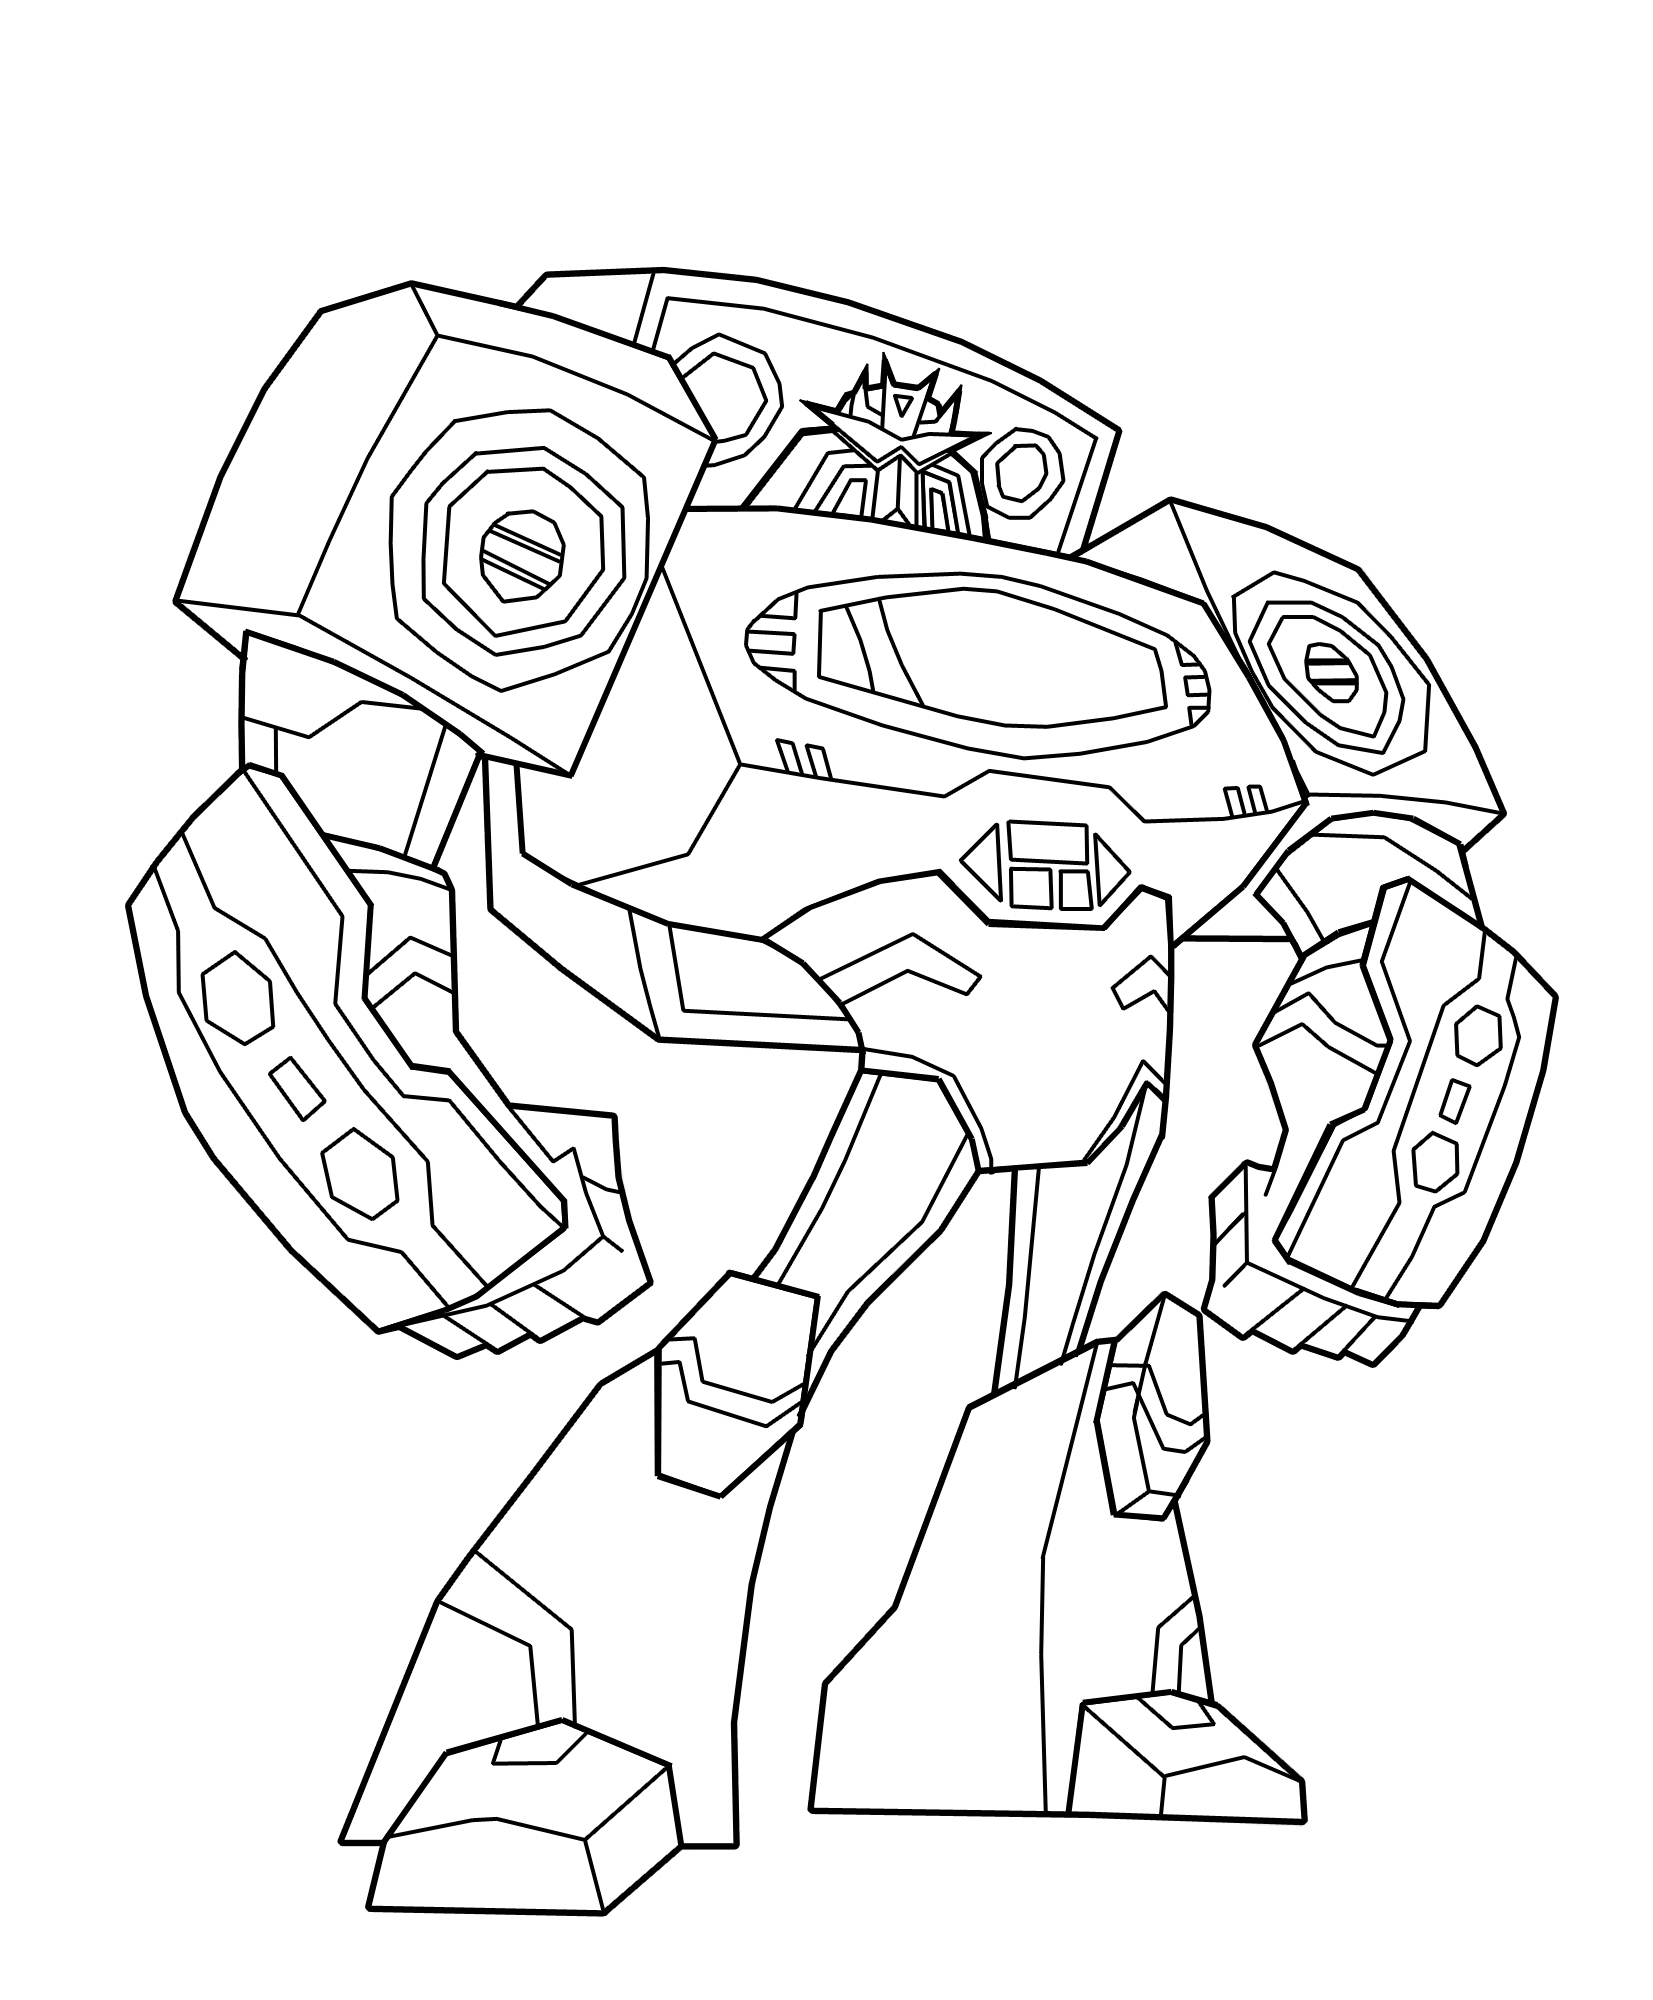 Bumblebee Transformer Coloring Pages Printable Virtrencom